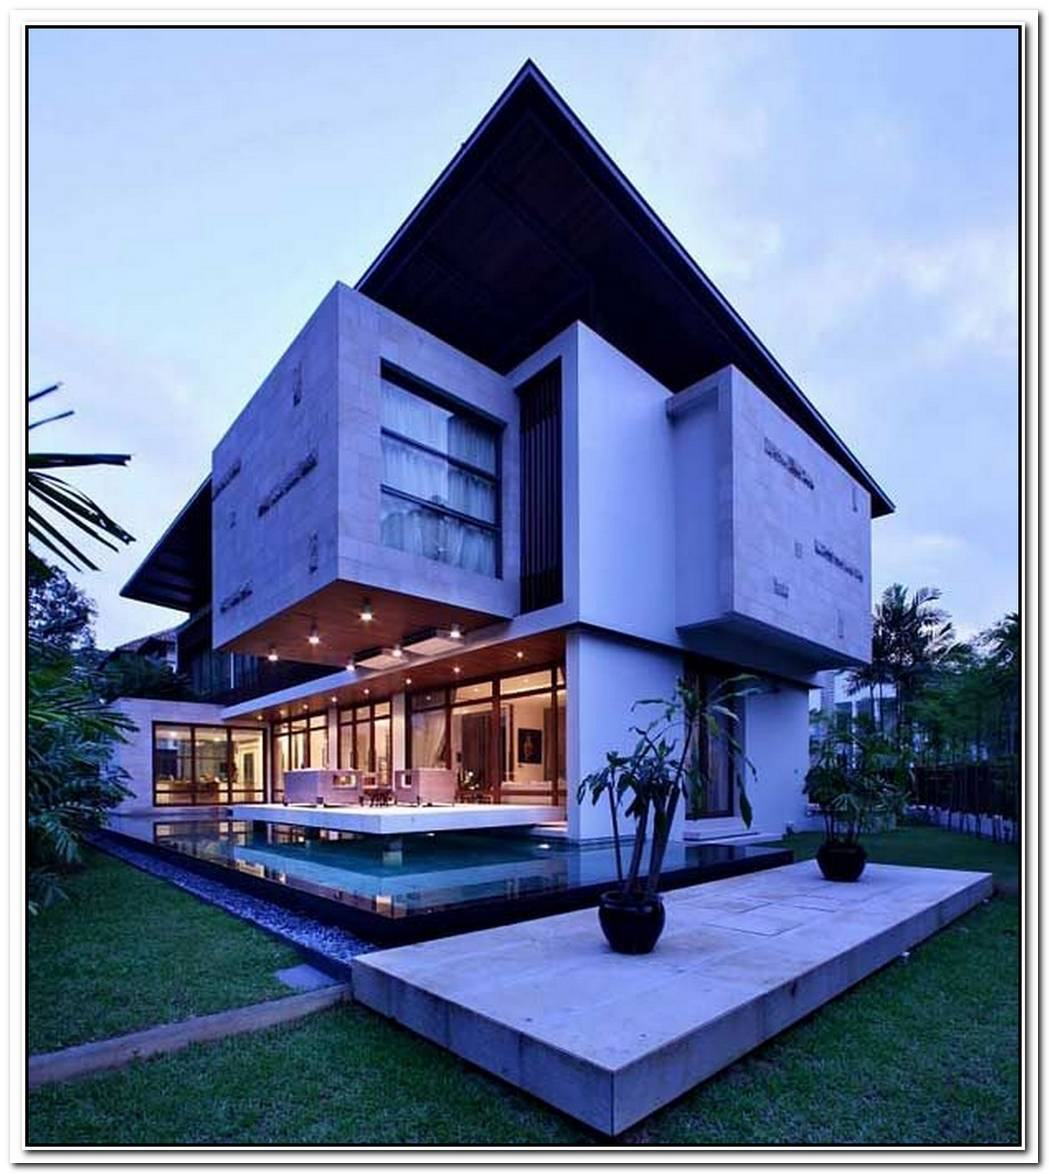 Resort Villa In The Frontcontemporary Home In The Back